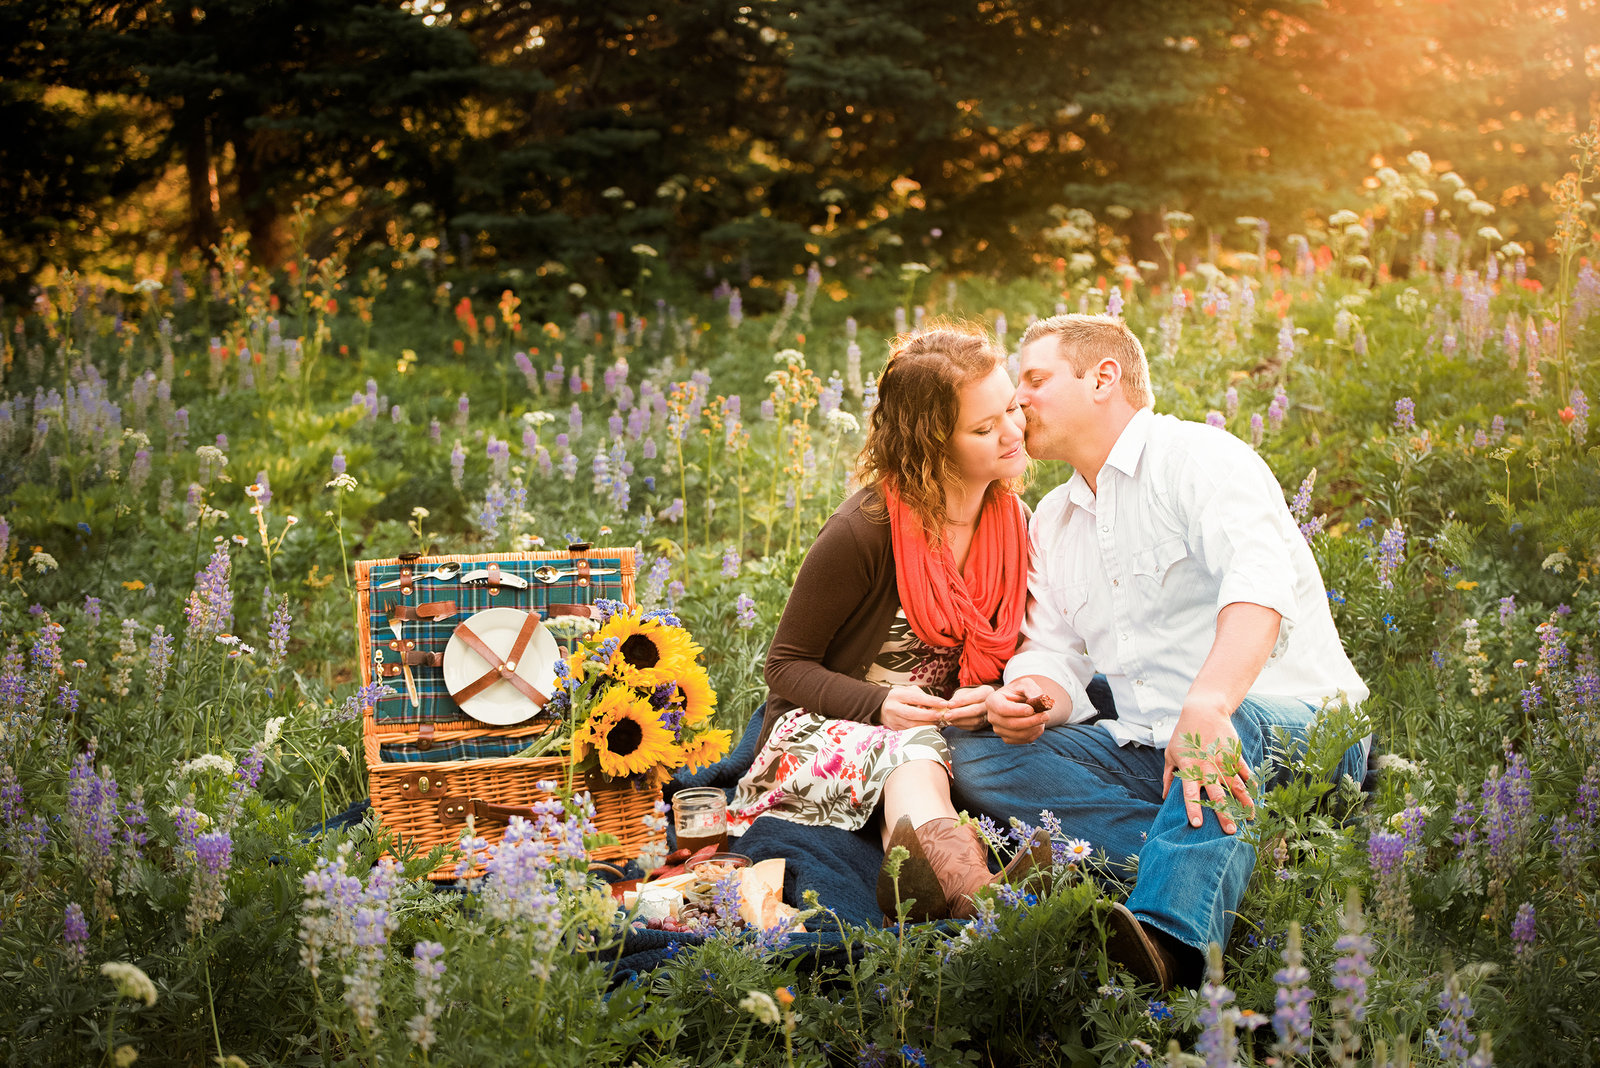 Picnic engagement photos by Ellensburg Engagement Photographer